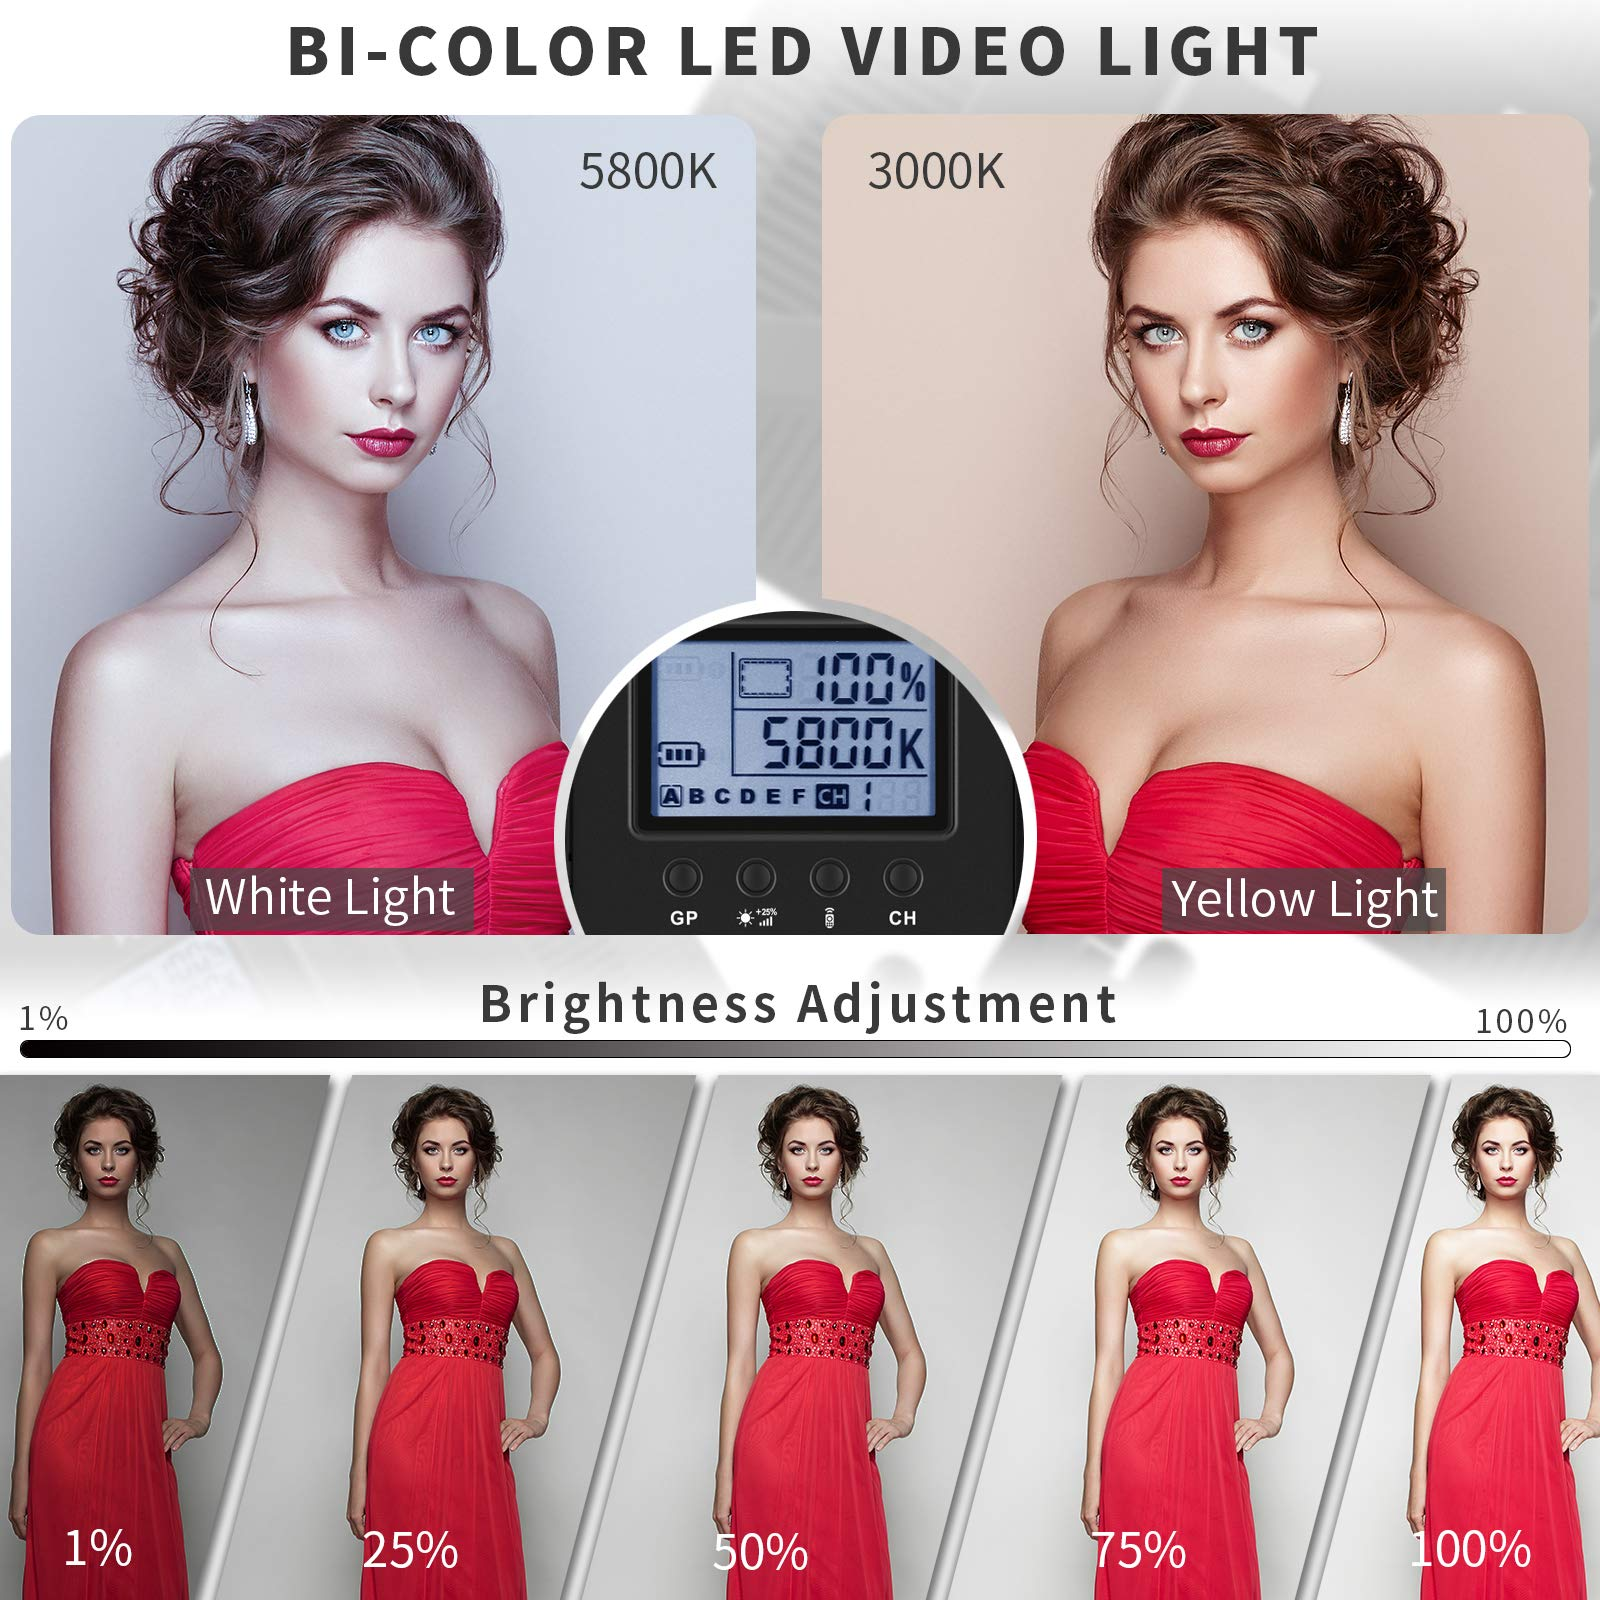 Bi-Color LED Video Light Stand Lighting Kit 3 Pack 15.4'' Large Panel 3000K-5800K 45W 4800LM Dimmable 1-100% Brightness Soft Light for YouTube Game Video Shooting Live Stream Photography Lighting by Dazzne (Image #2)